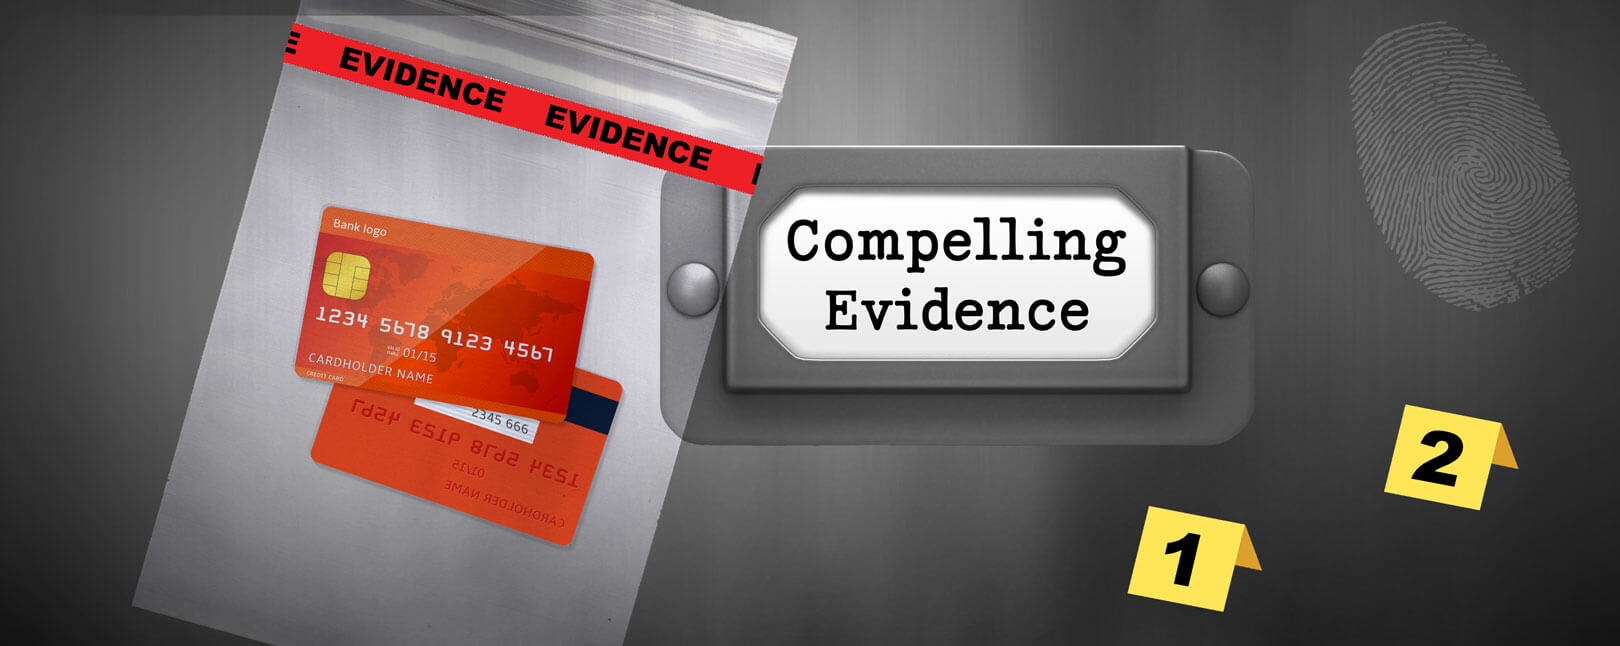 """""""Compelling Evidence"""" for Chargeback Disputes?"""